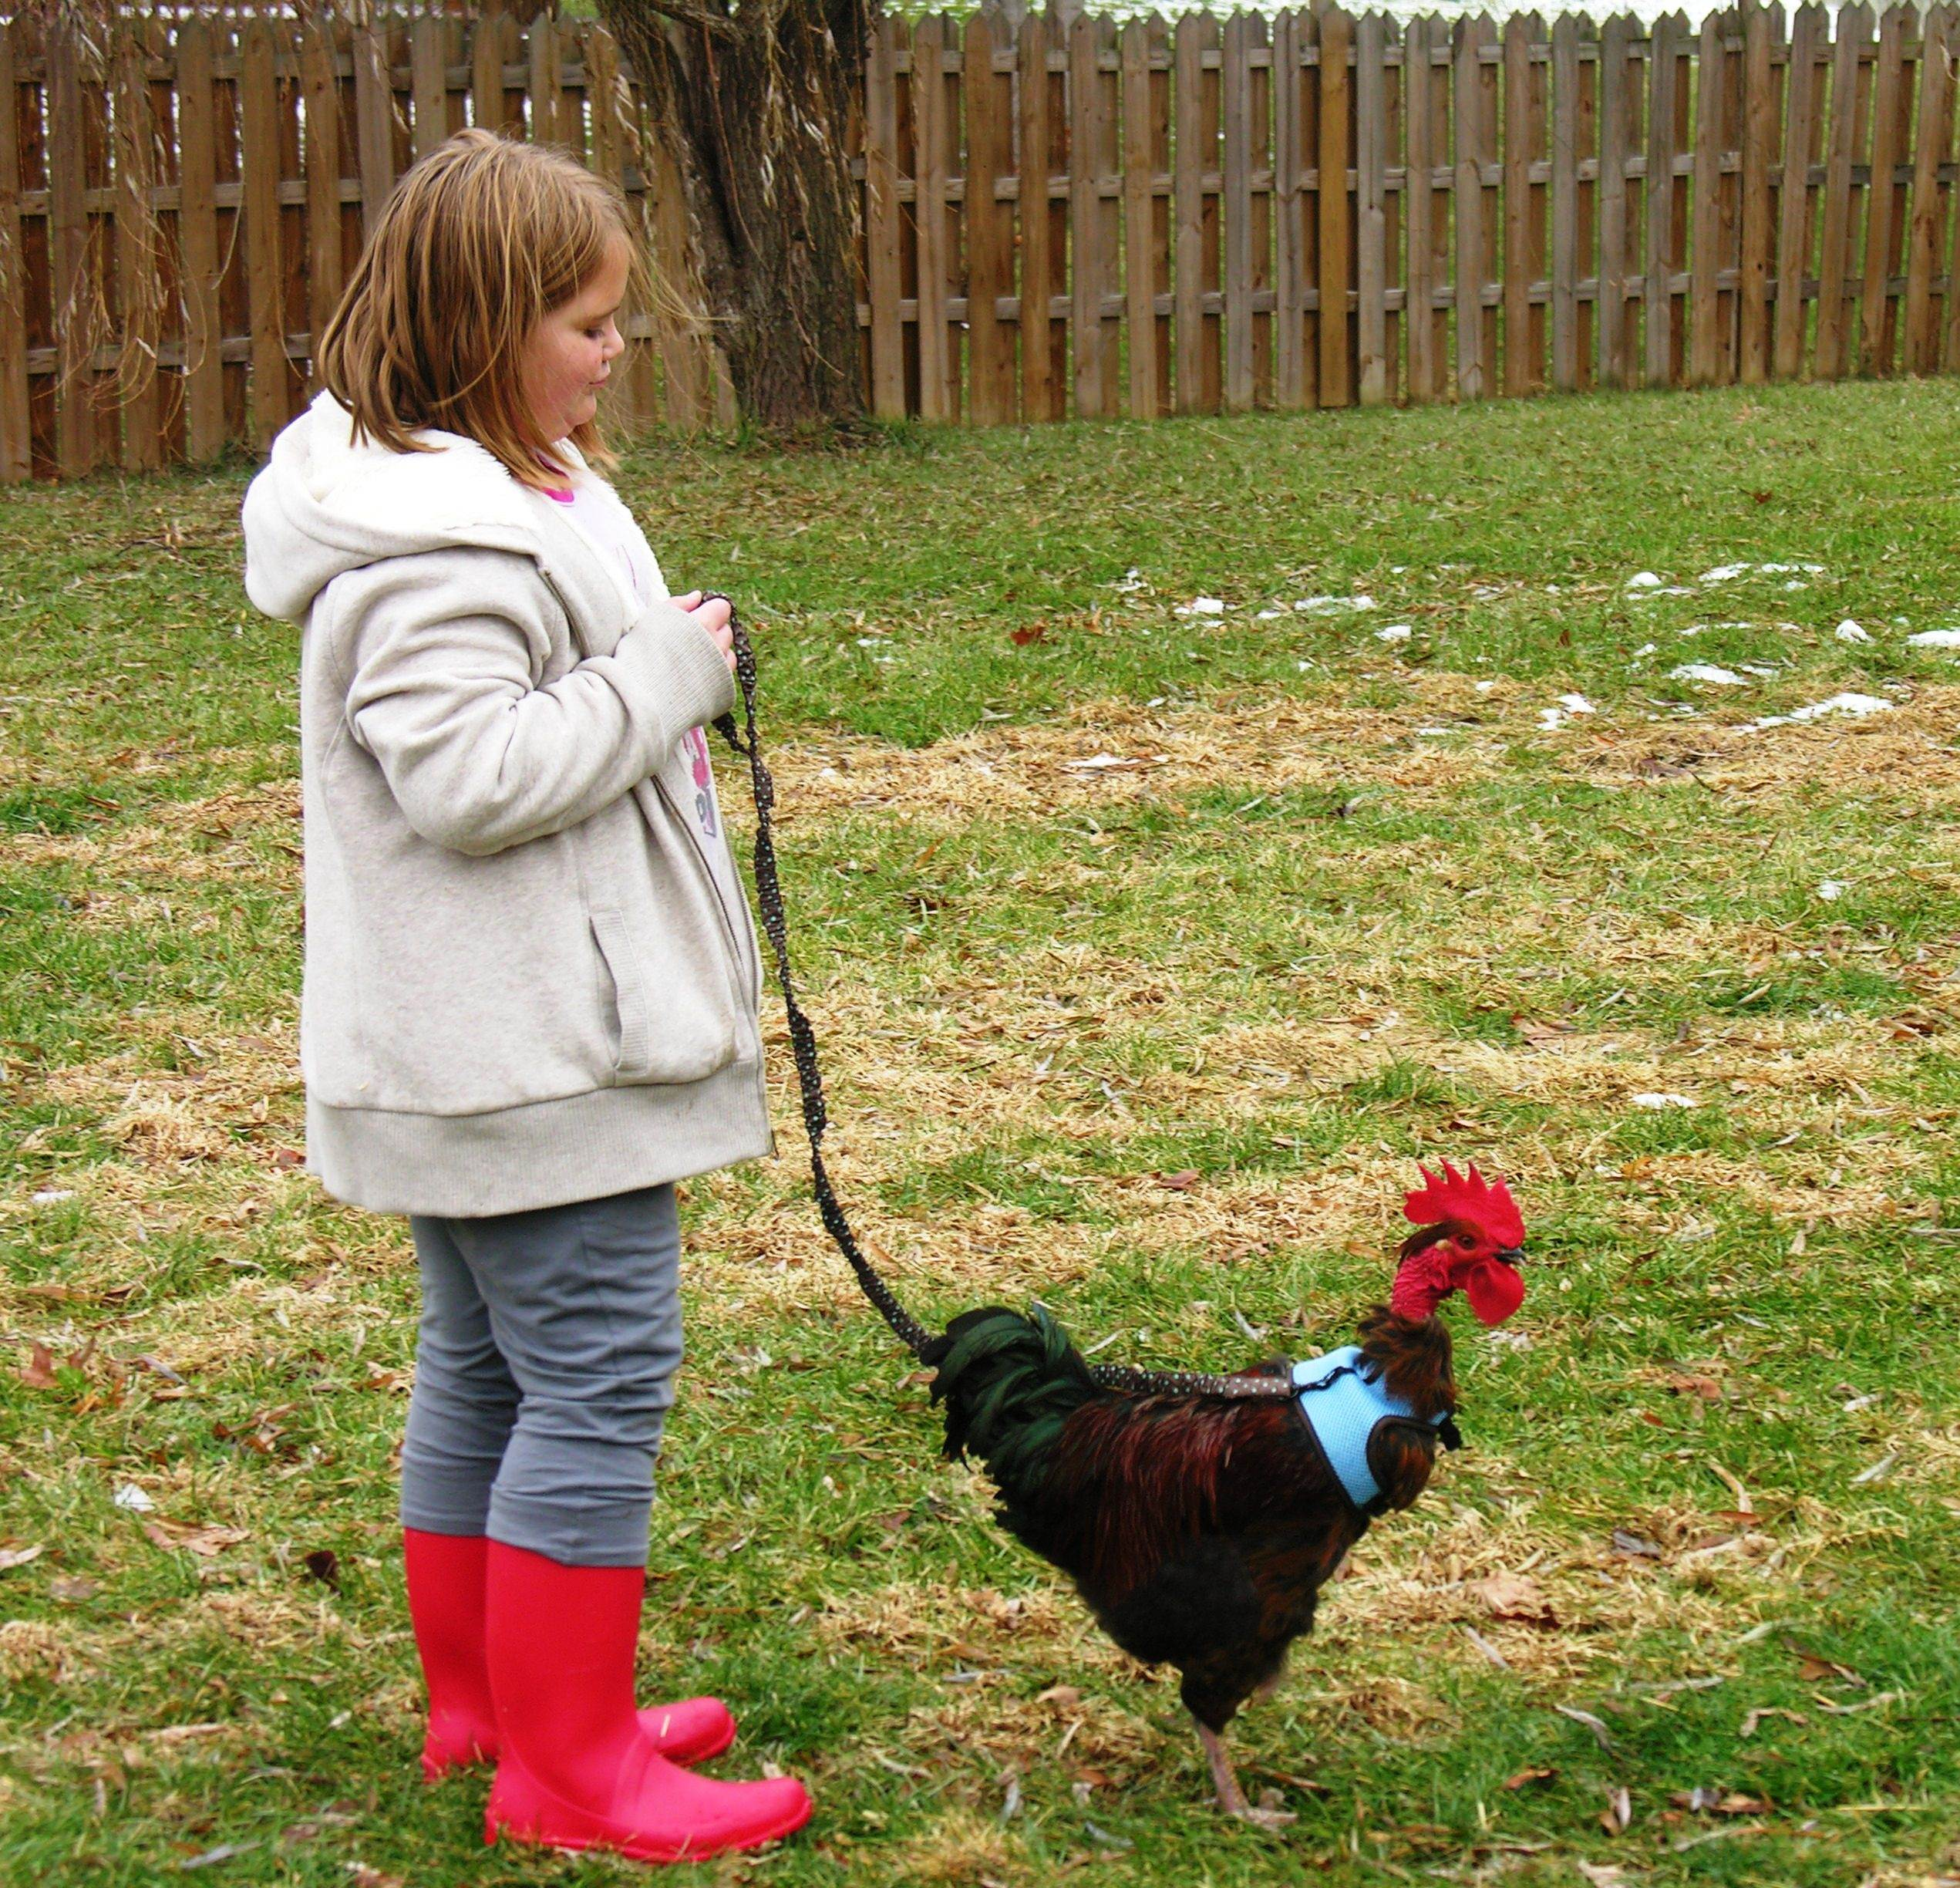 We Keep 18 Different Breeds Of Chickens.